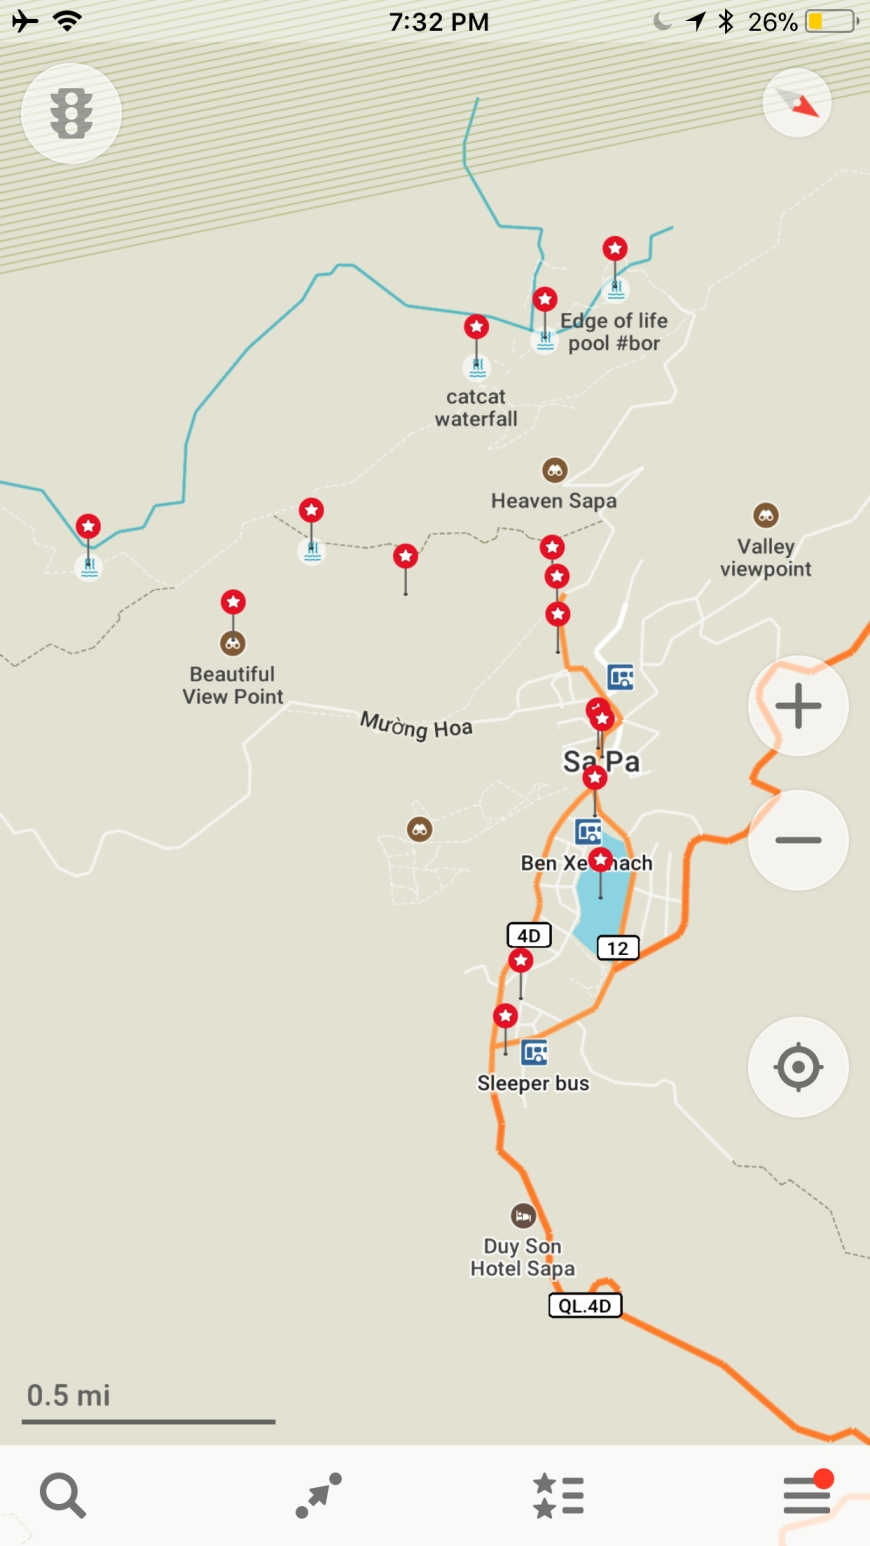 Maps.me screenshot of awesome places to go explore in and around Sapa, Vietnam